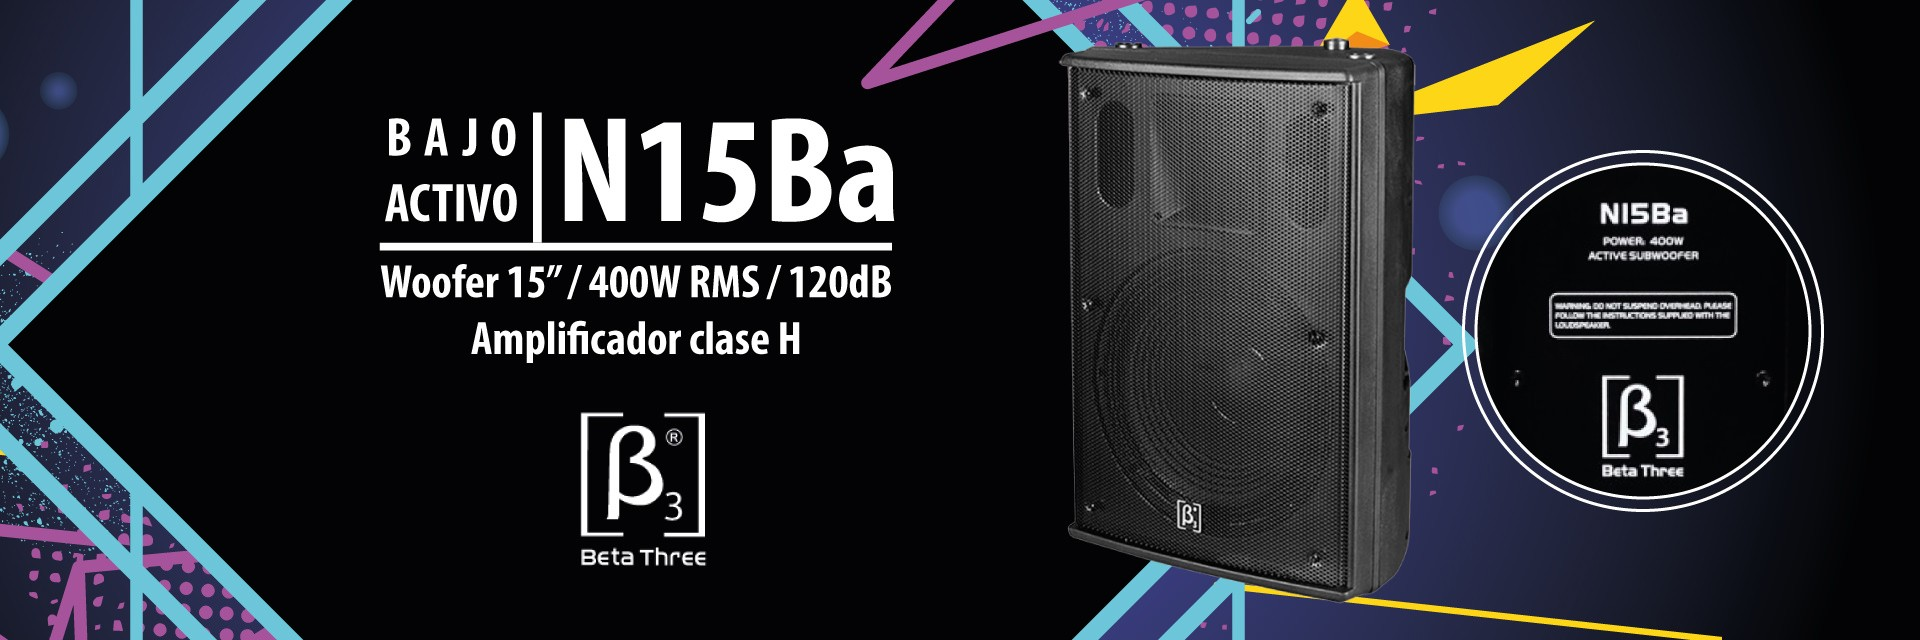 "BAJO ACTIVO BETA THREE N15BA - WOOFER 15"" / 400W RMS / 120 dB"